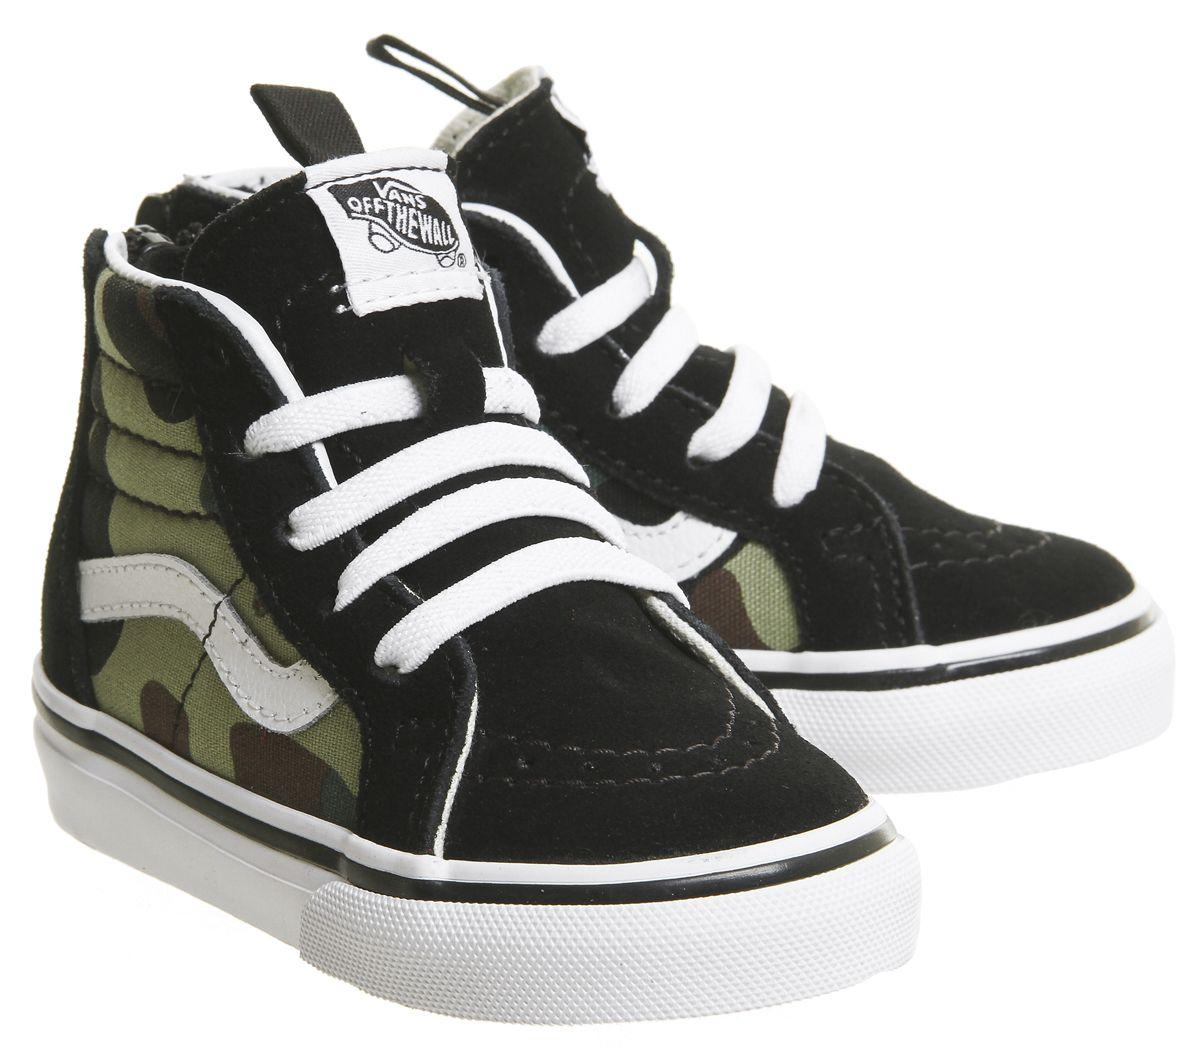 dcc75b5d90 Lyst - Vans Sk8 Hi Zip Toddler in Black for Men